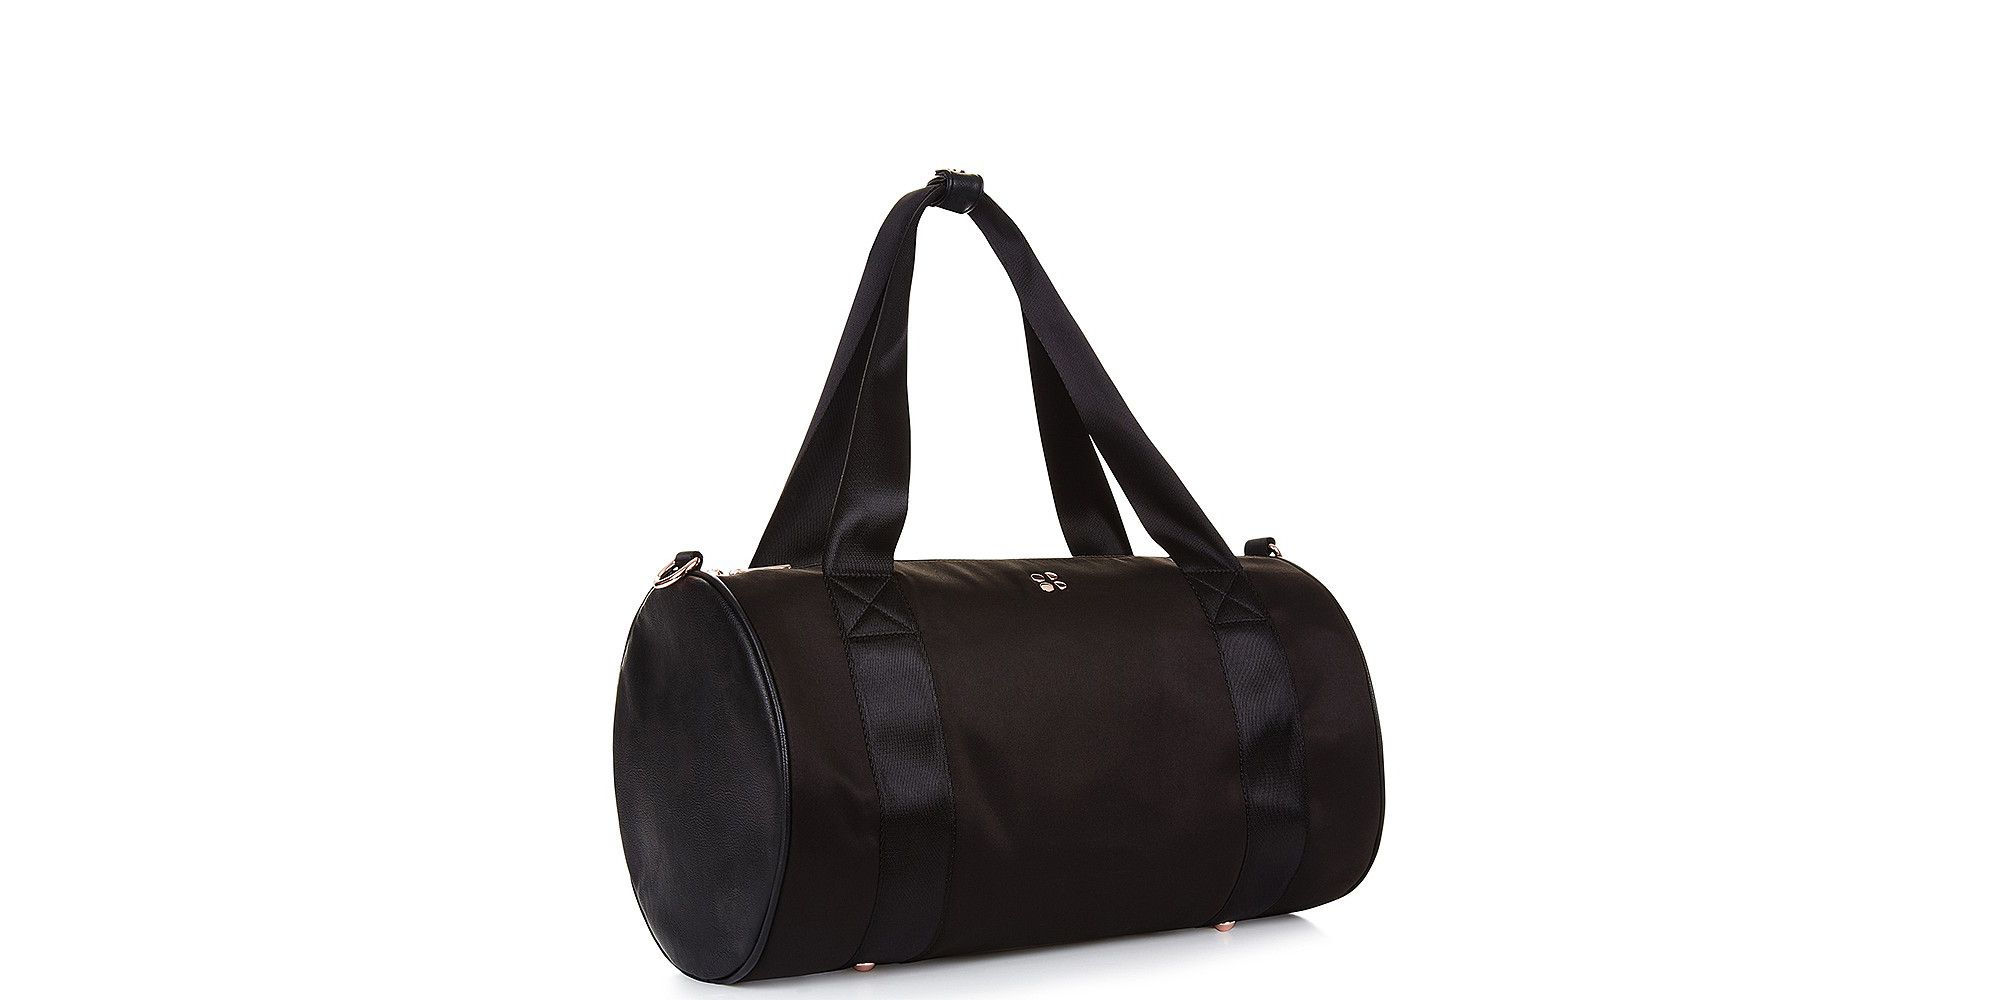 This Cute Gym Bag Is More Than 50% Off Right Now 518637fe27cd7